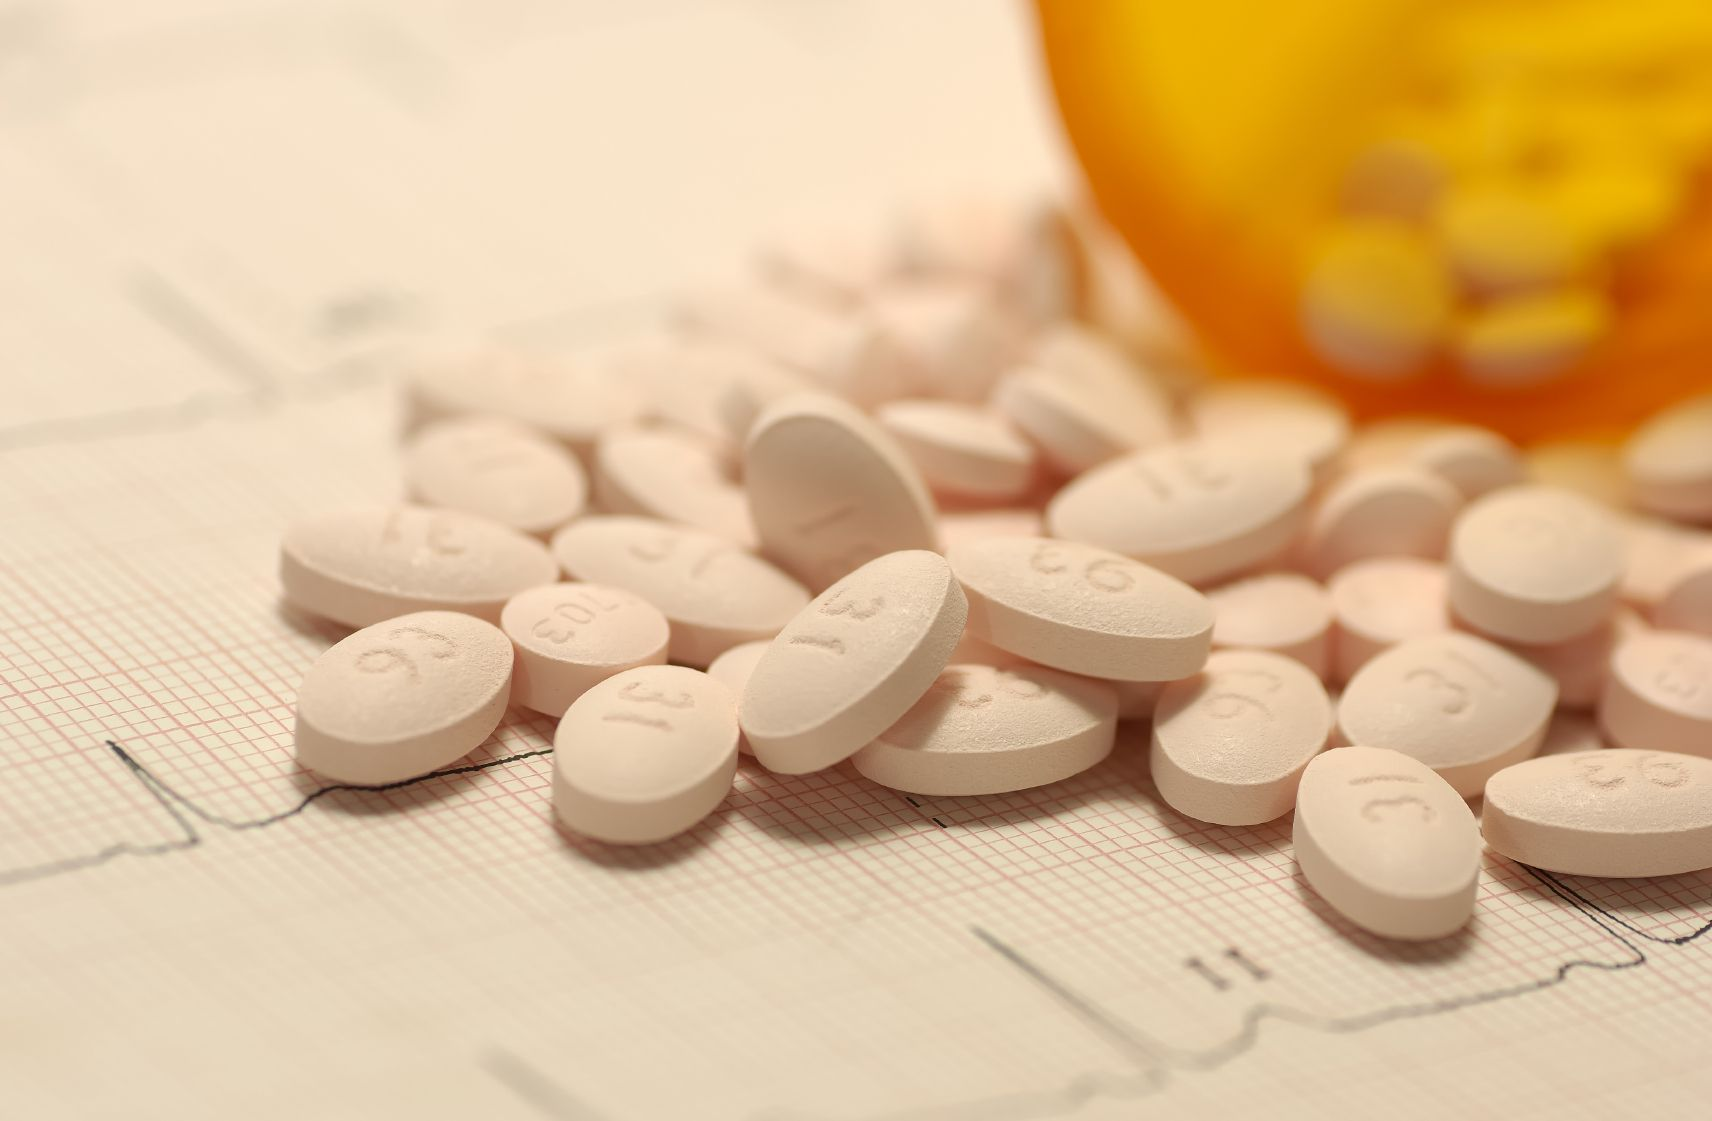 These Drugs Are Cutting Your Life Short